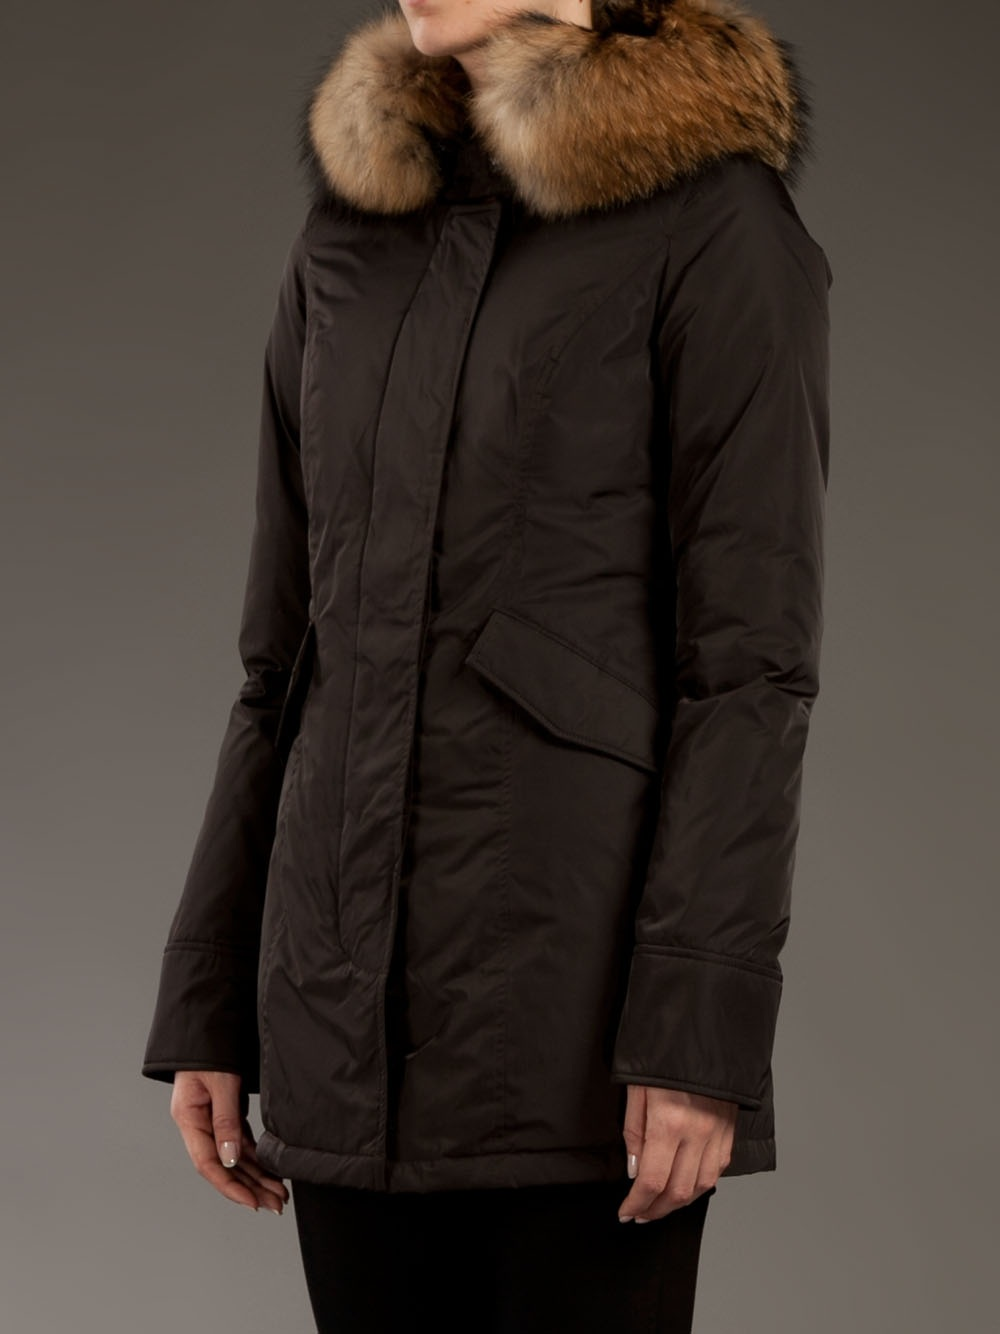 lyst woolrich luxury arctic parka in brown. Black Bedroom Furniture Sets. Home Design Ideas